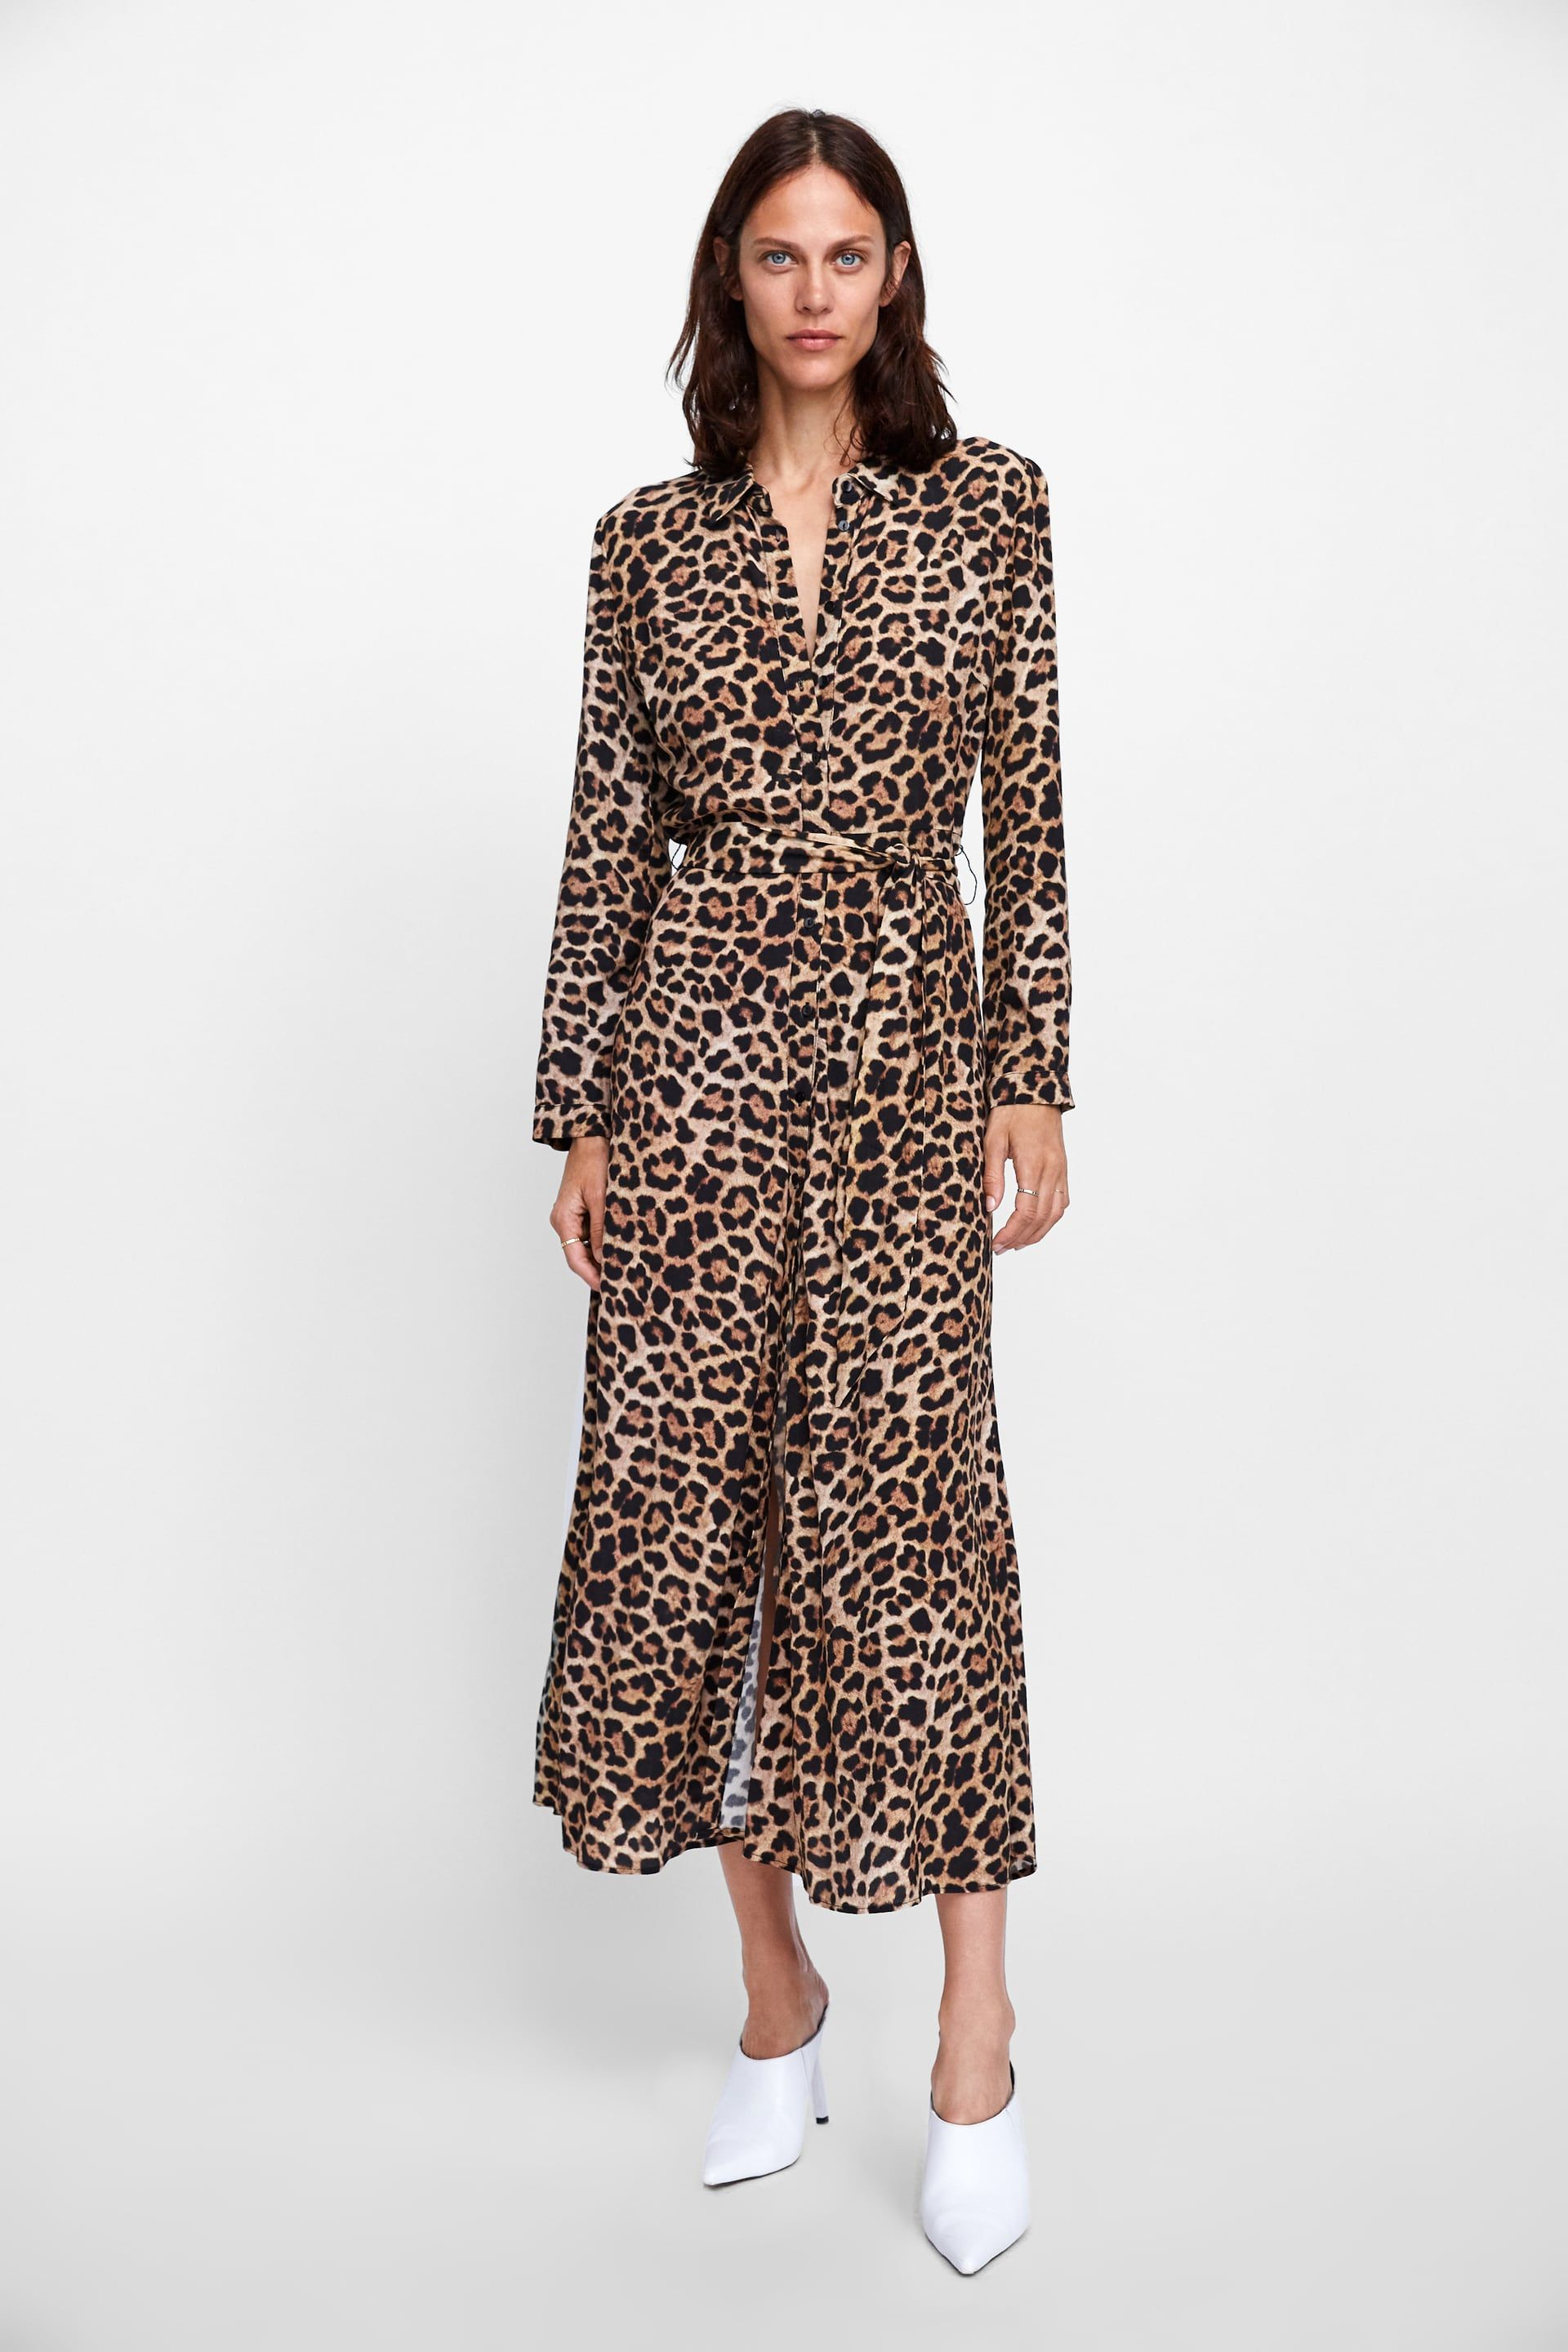 ebd46c81318 VESTIDO LARGO ESTAMPADO ANIMAL in 2019